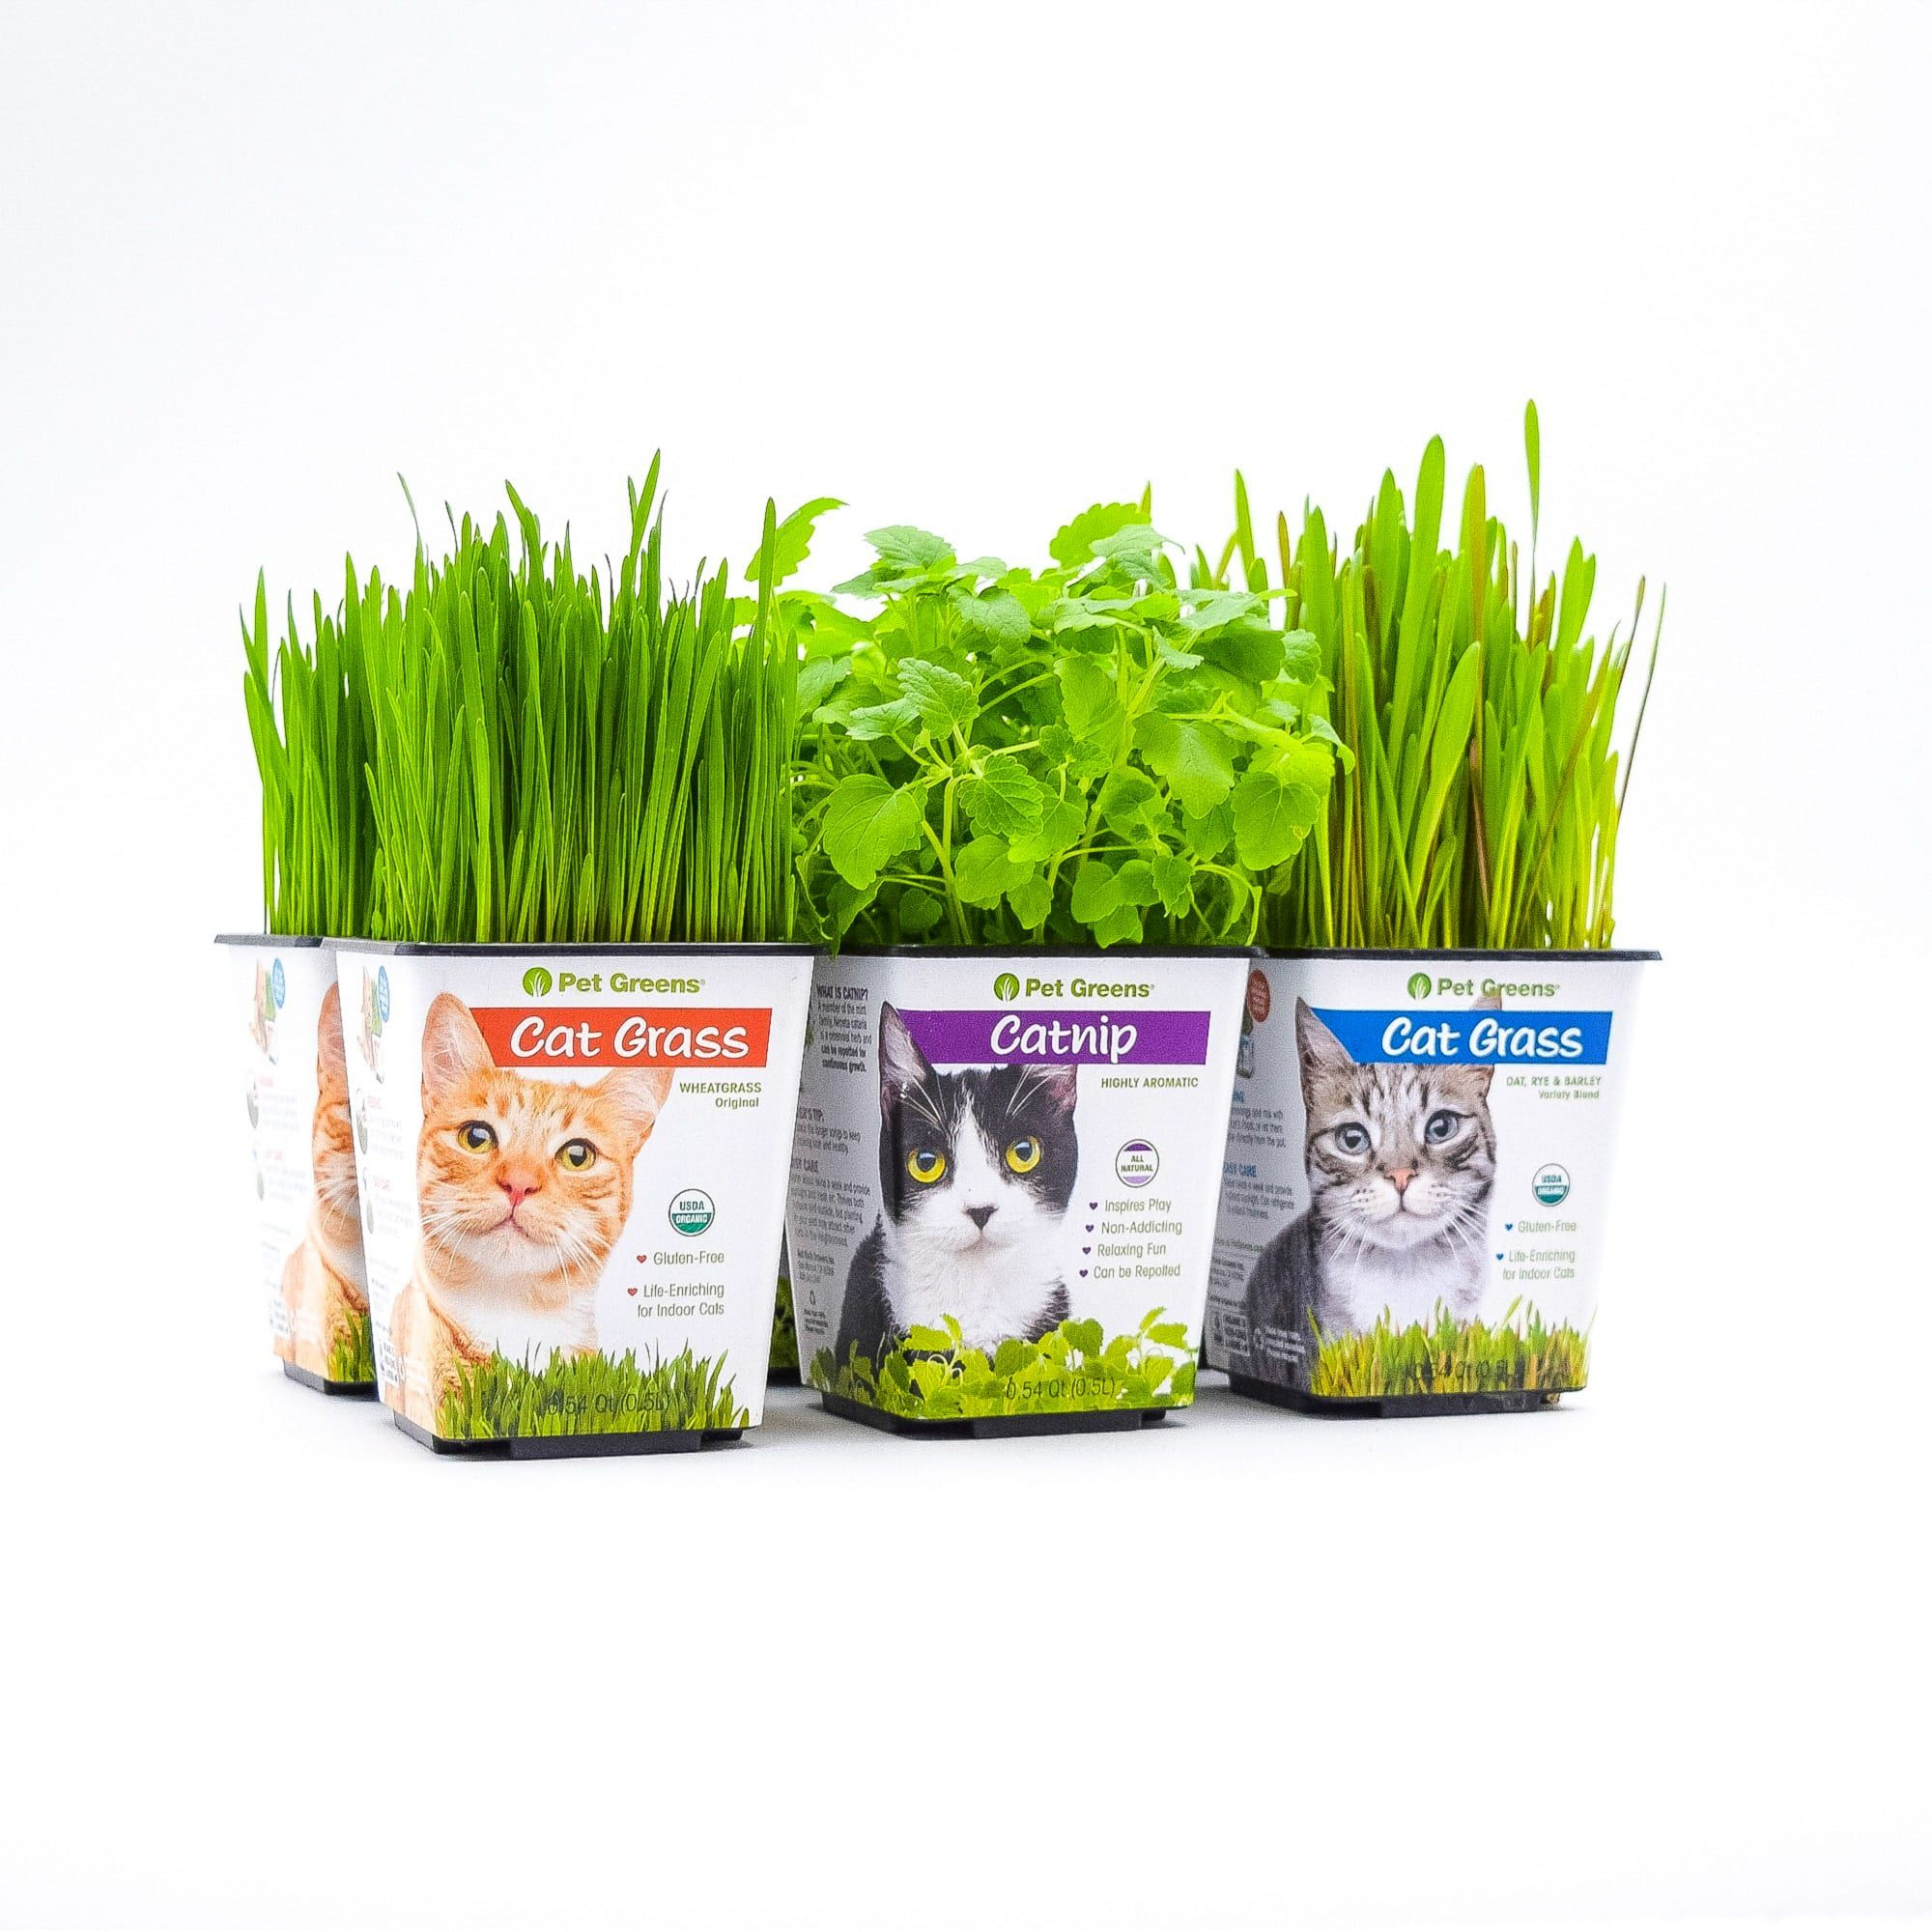 Pet Greens Multi Pack Live Cat Grass And Catnip Pack Of 6 Petco In 2020 Cat Grass Pet Grass Cat Grass Indoor